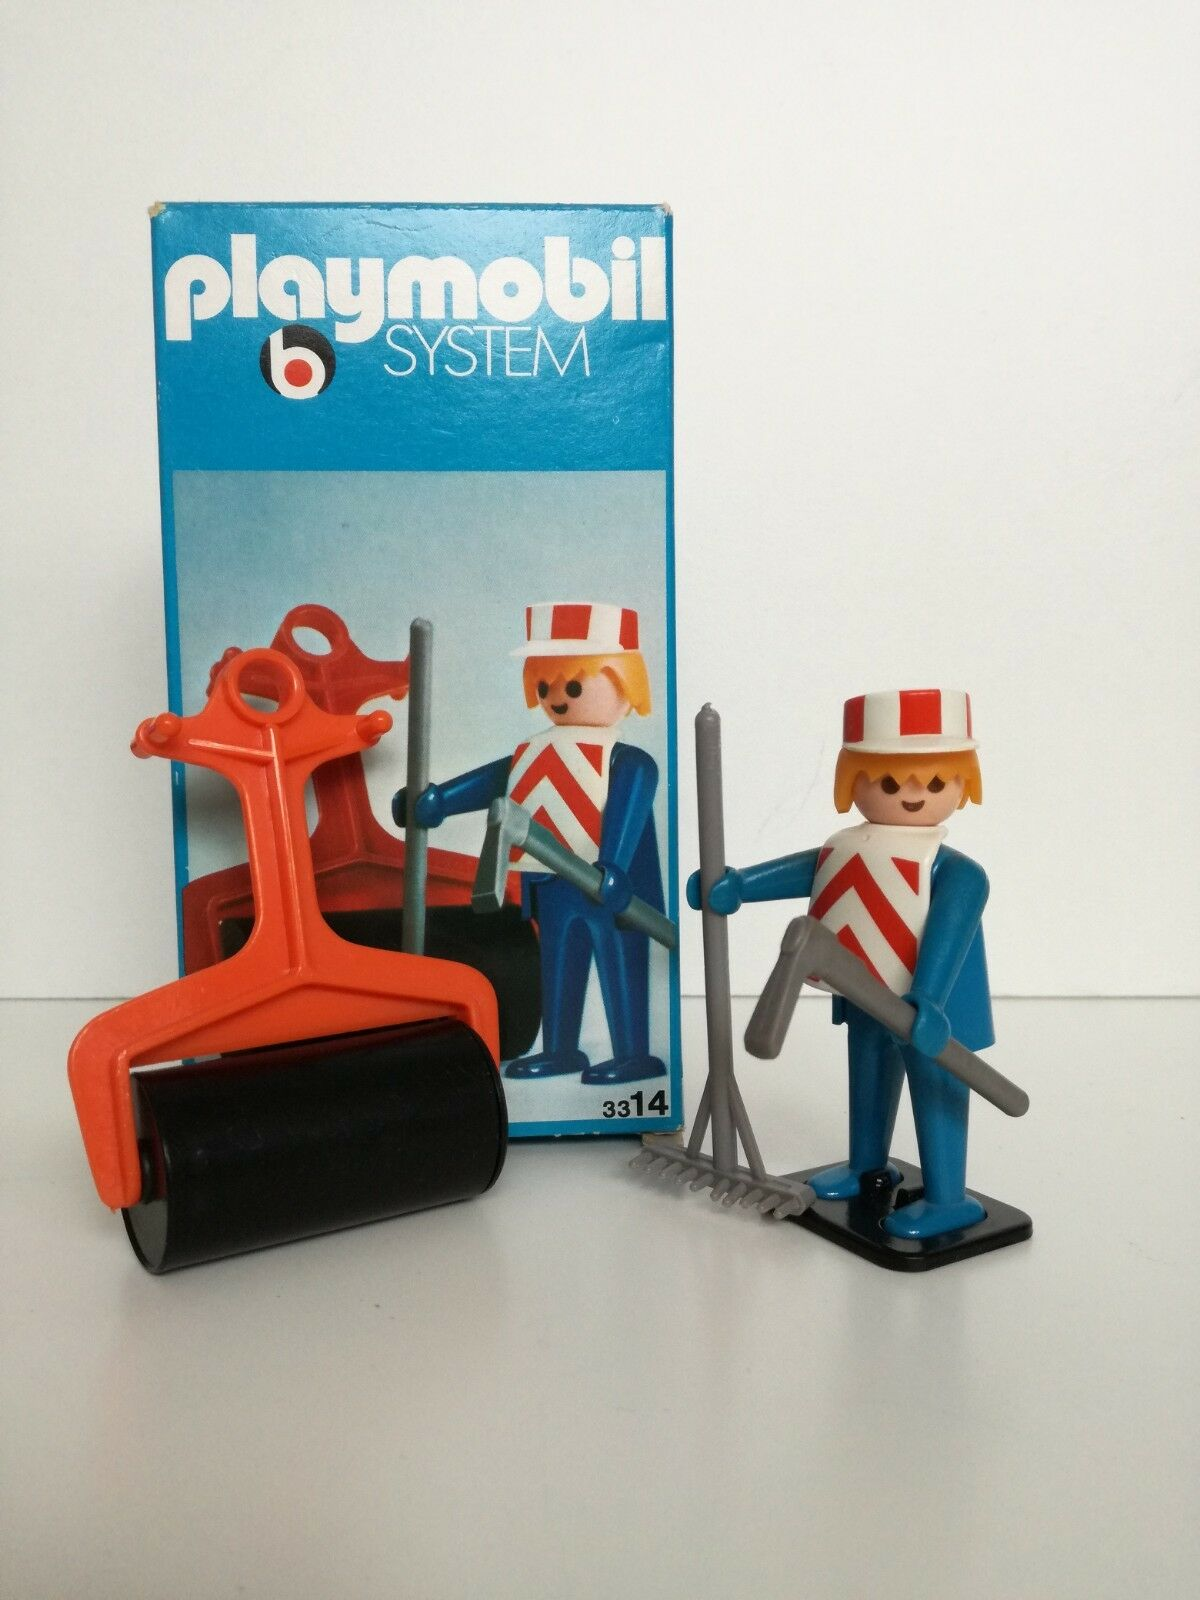 Playmobil 3314 v1 -  Construction worker with wals (Klicky OVP LineArt Box)